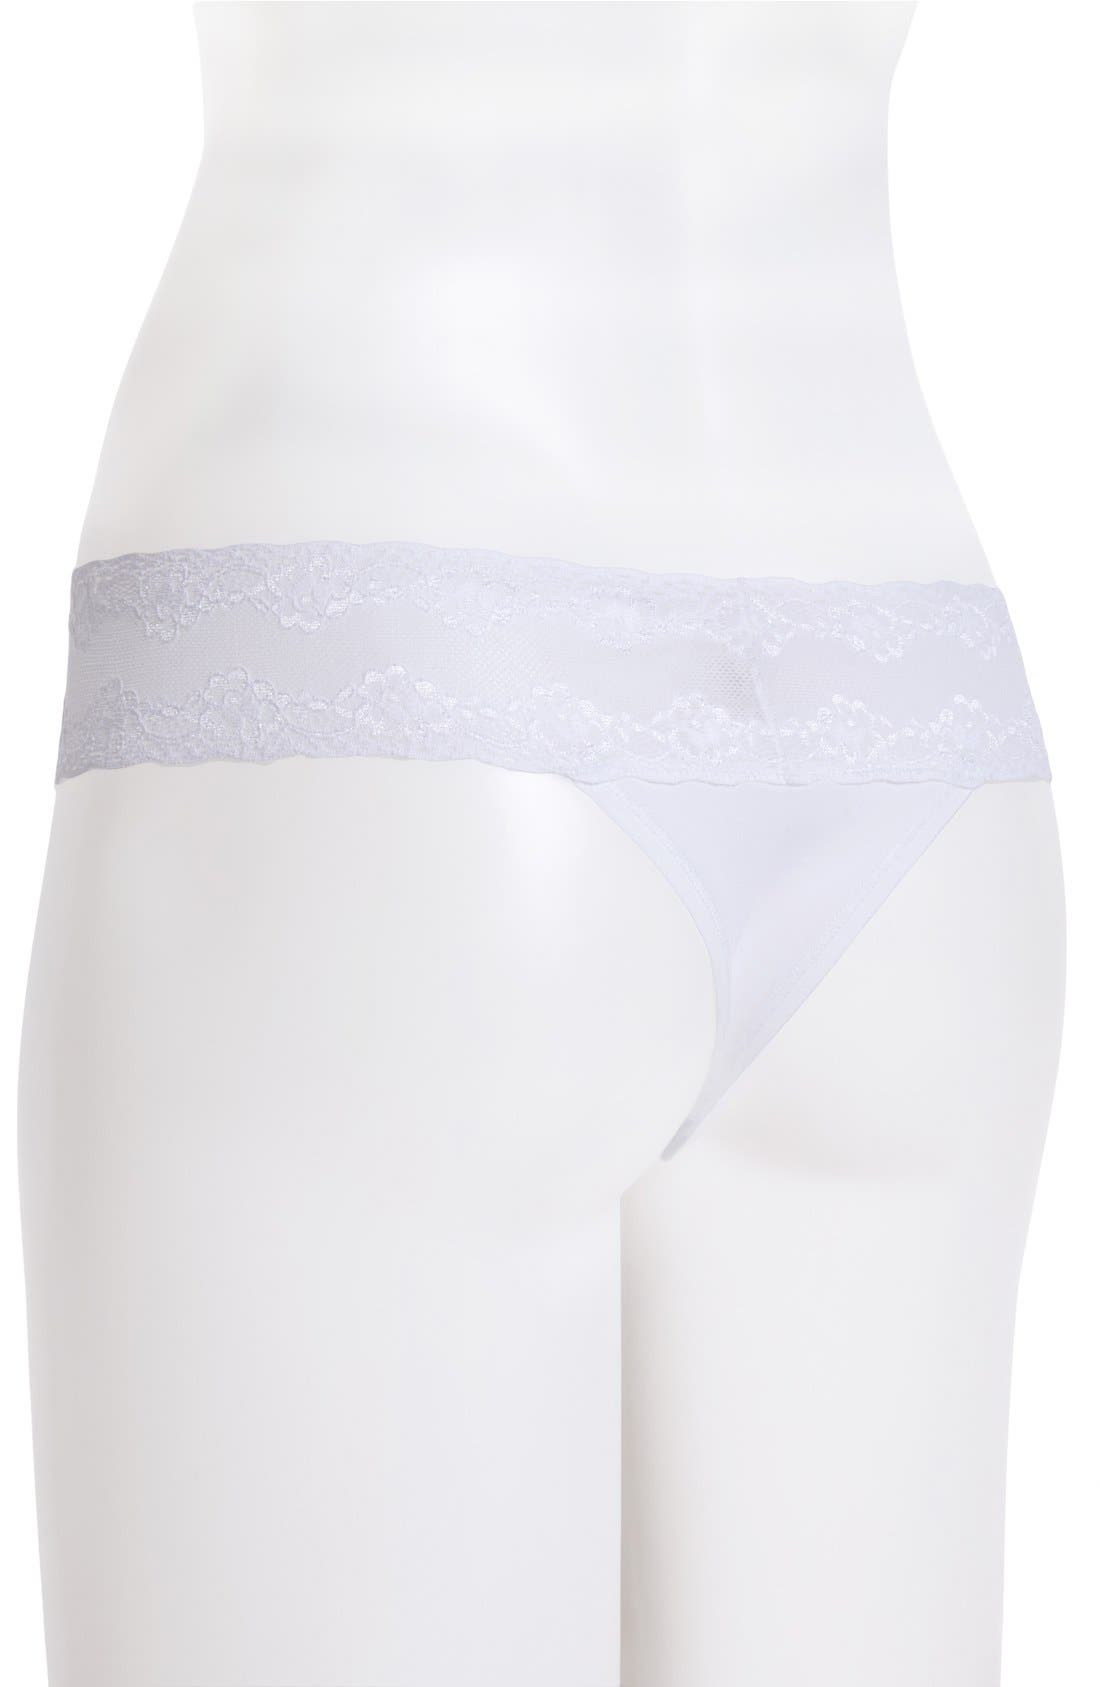 Bliss Perfection Thong,                             Alternate thumbnail 246, color,